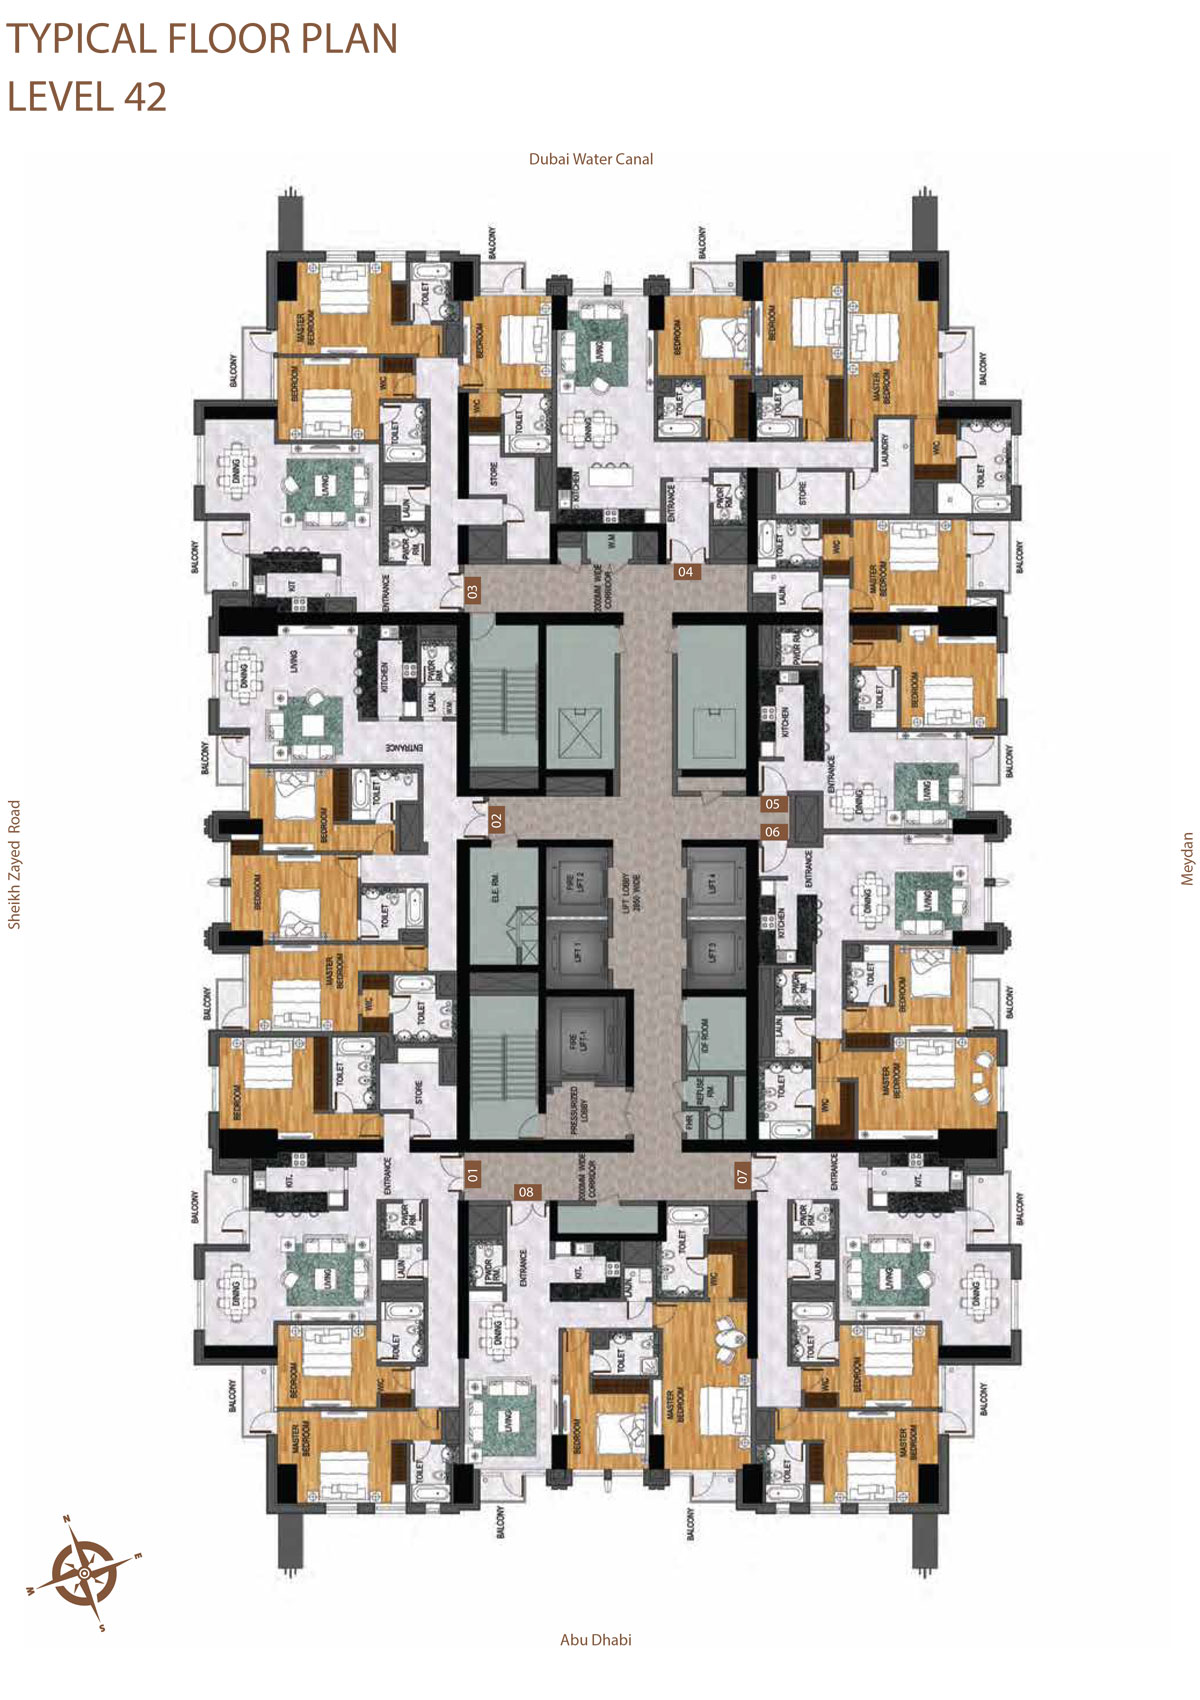 Level 42     Typical Floor Layout Plan